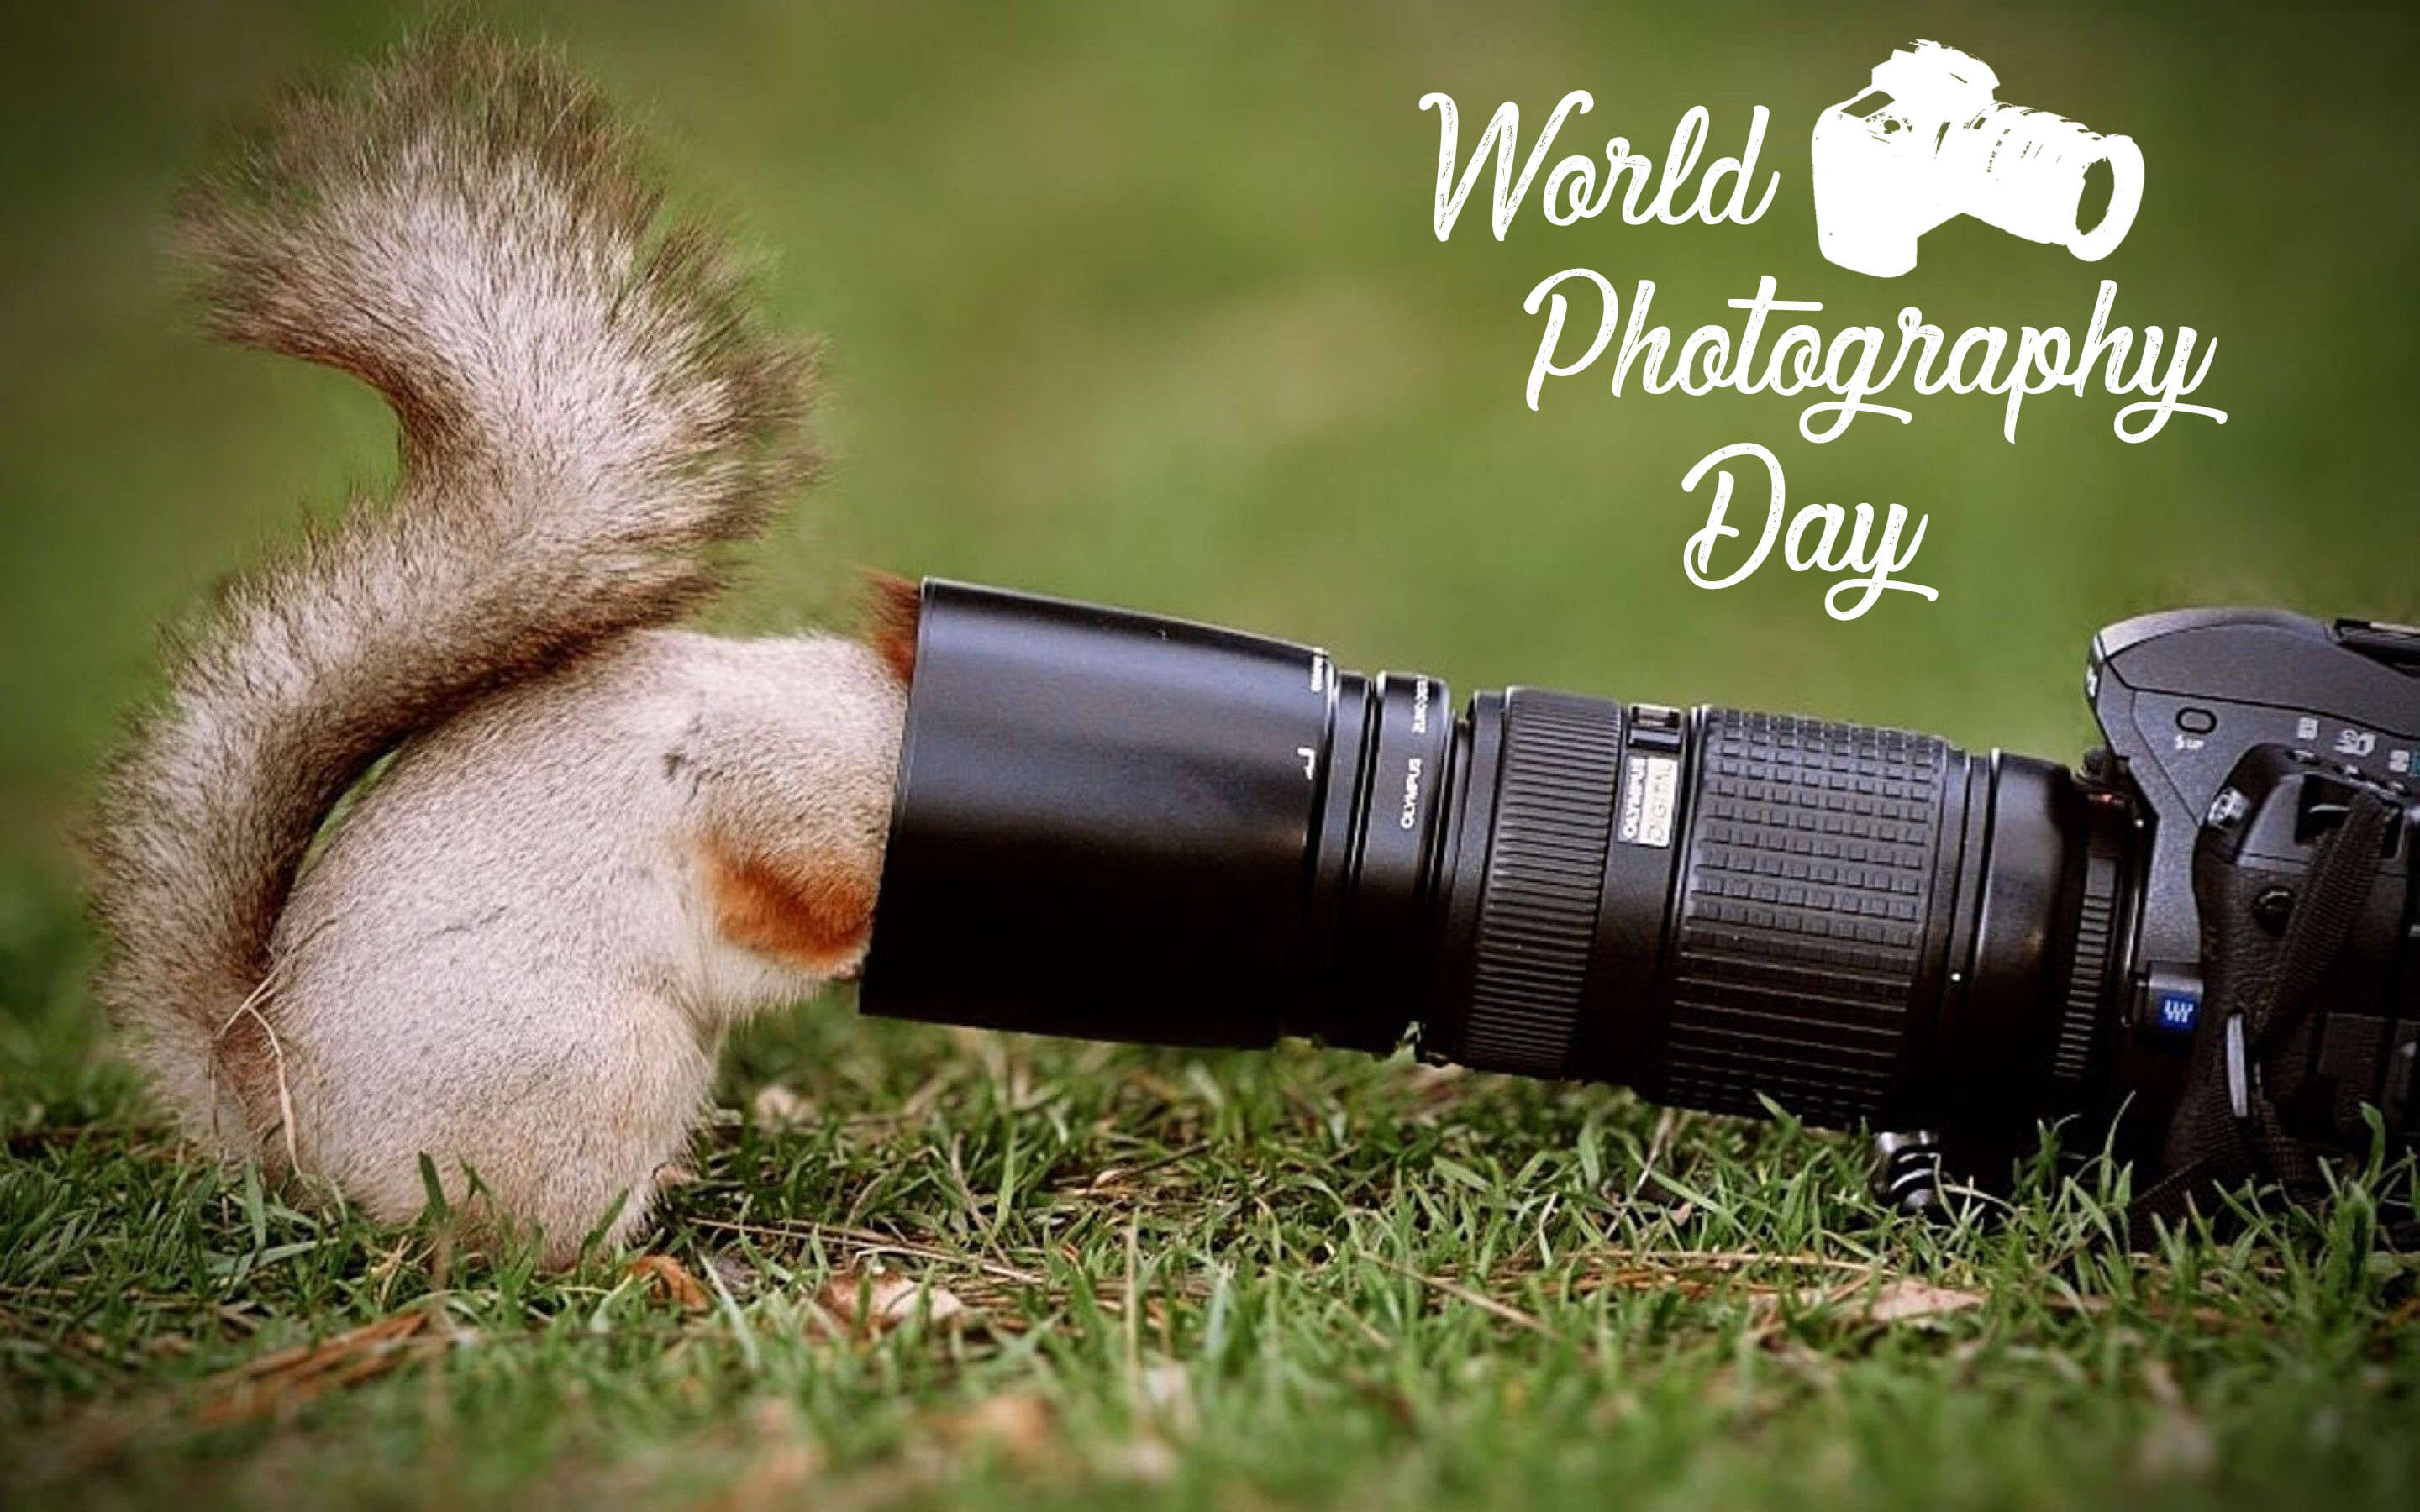 world photography day squirrel in camera lens hd wallpaper